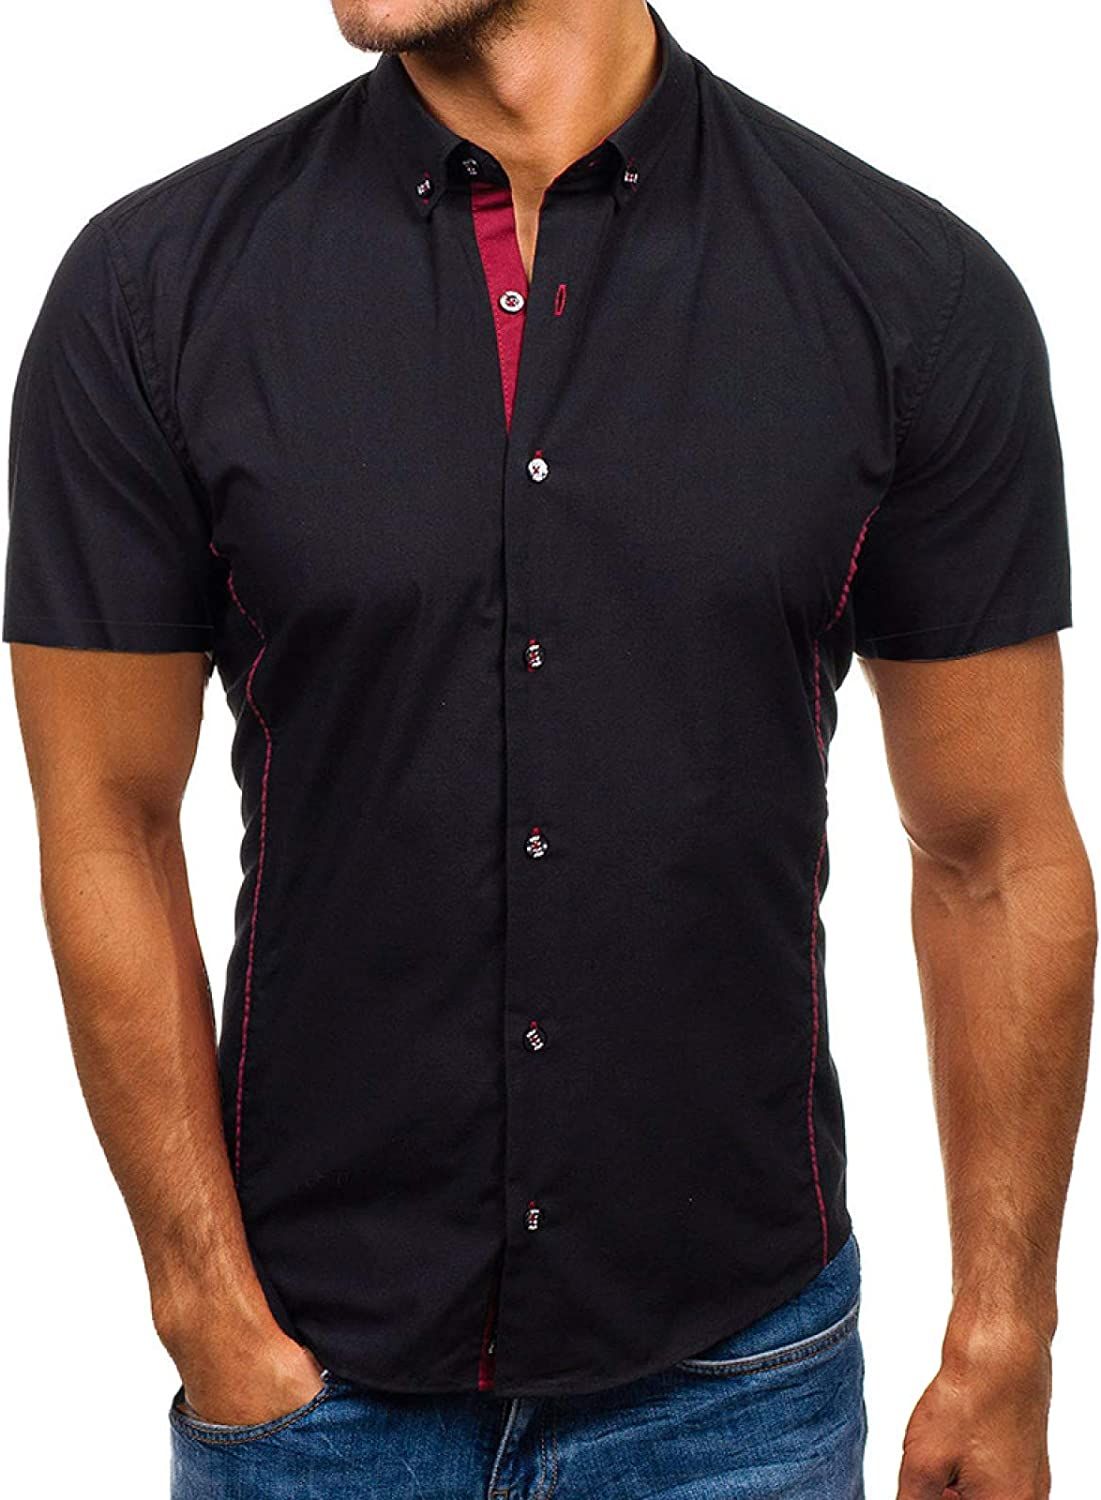 Indianapolis Mall Luandge Men's Short-Sleeved Shirts Stitching Patchwo Personality New item